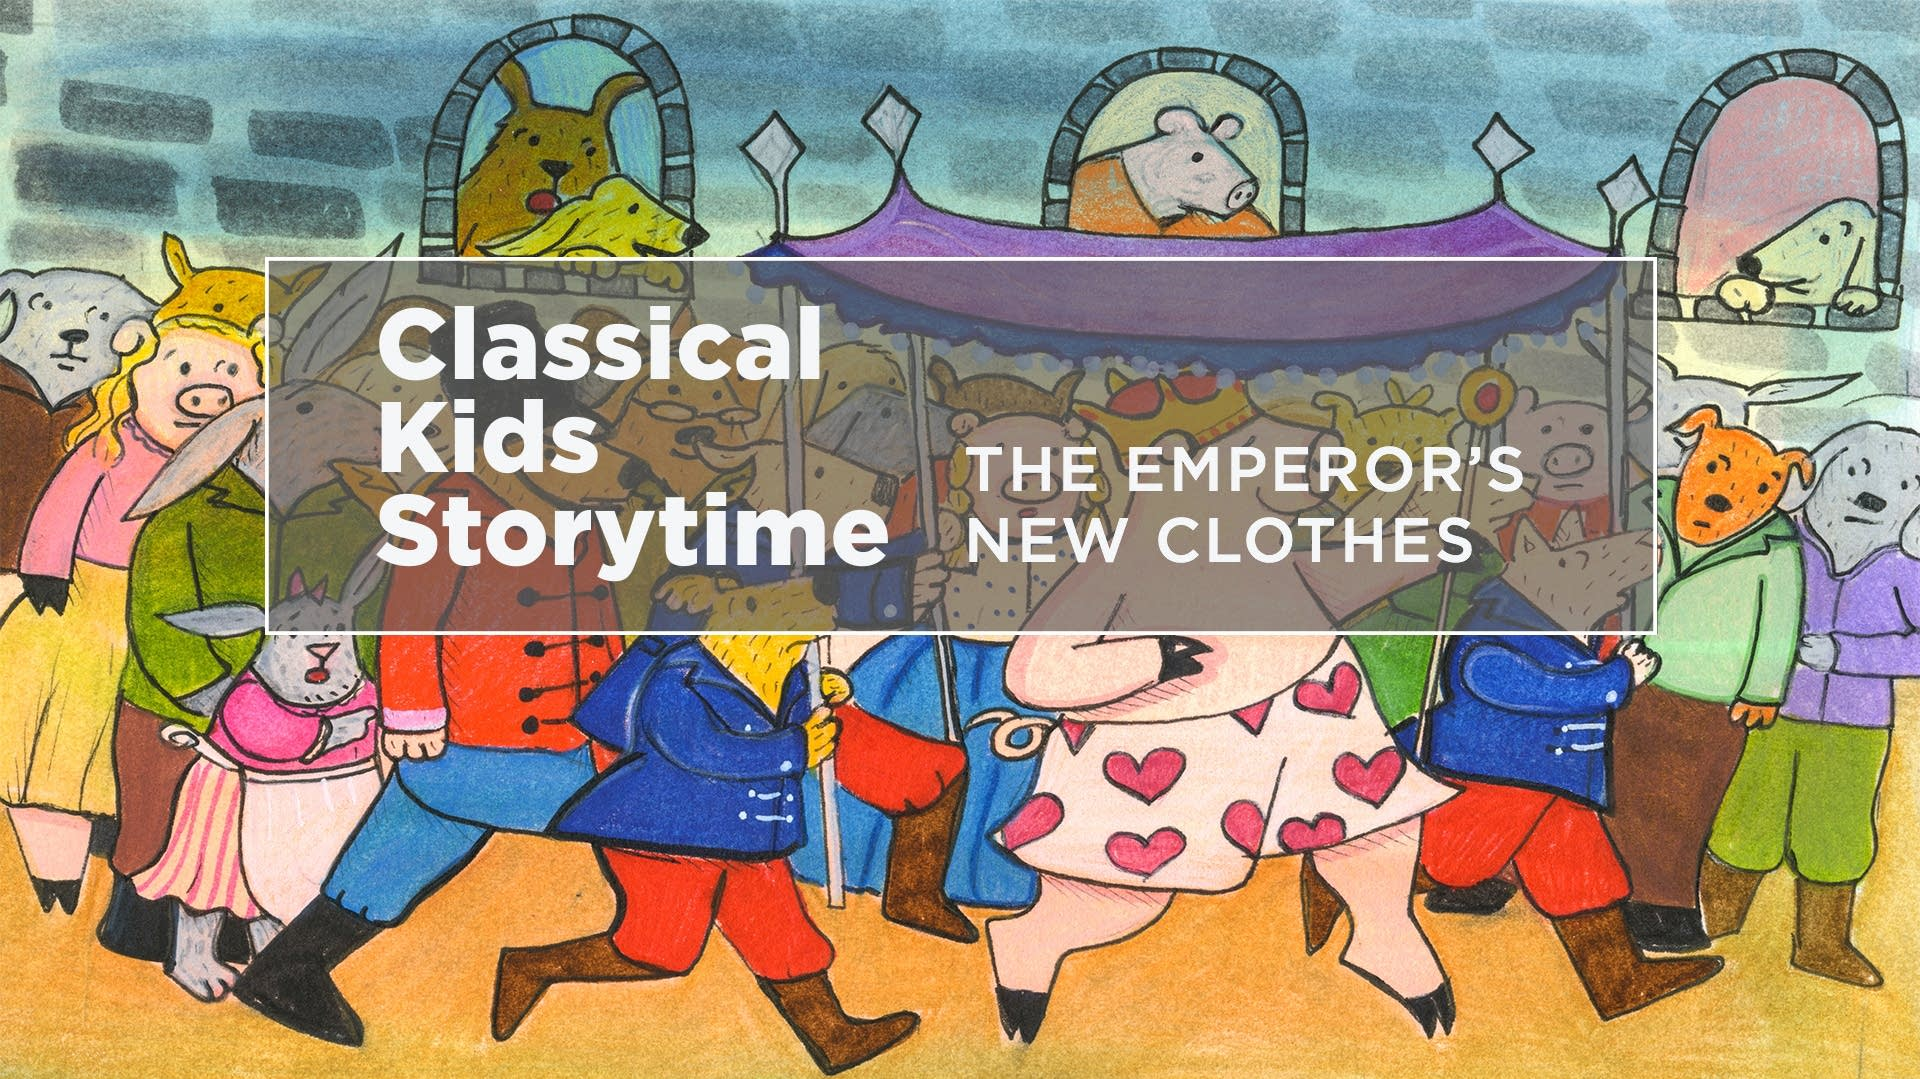 Classical Kids Storytime: Emperors New Clothes